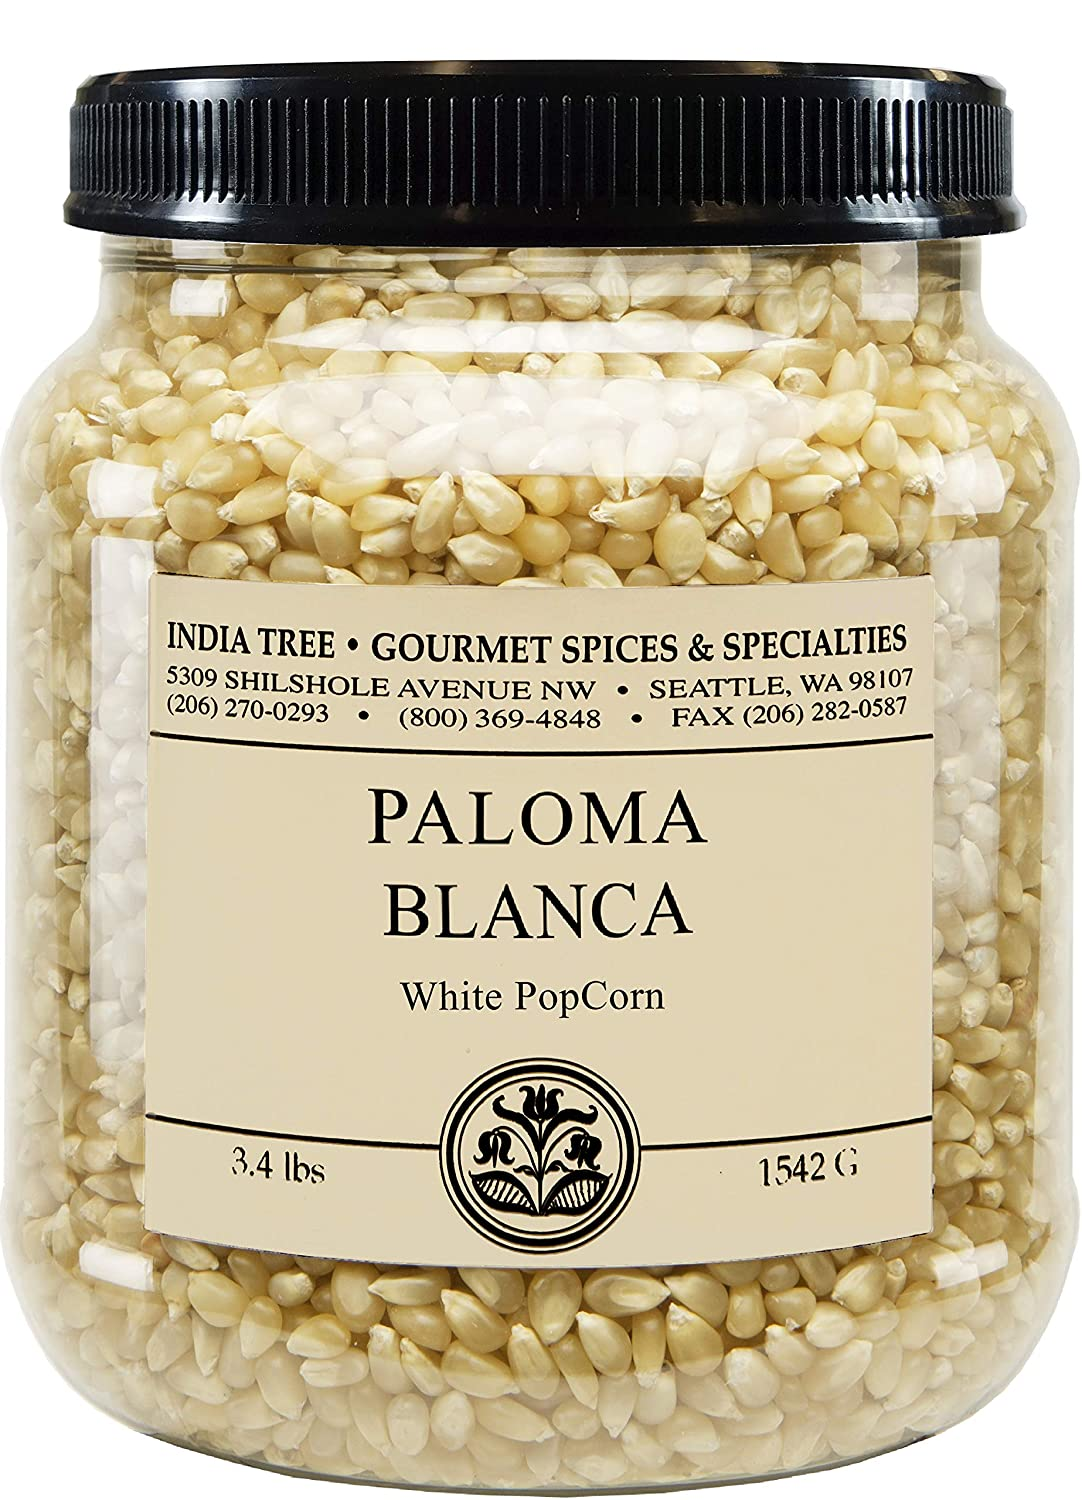 India Tree Paloma Max 88% OFF Blanca White PopCorn Excellent Pack 2 lb 3.4 of